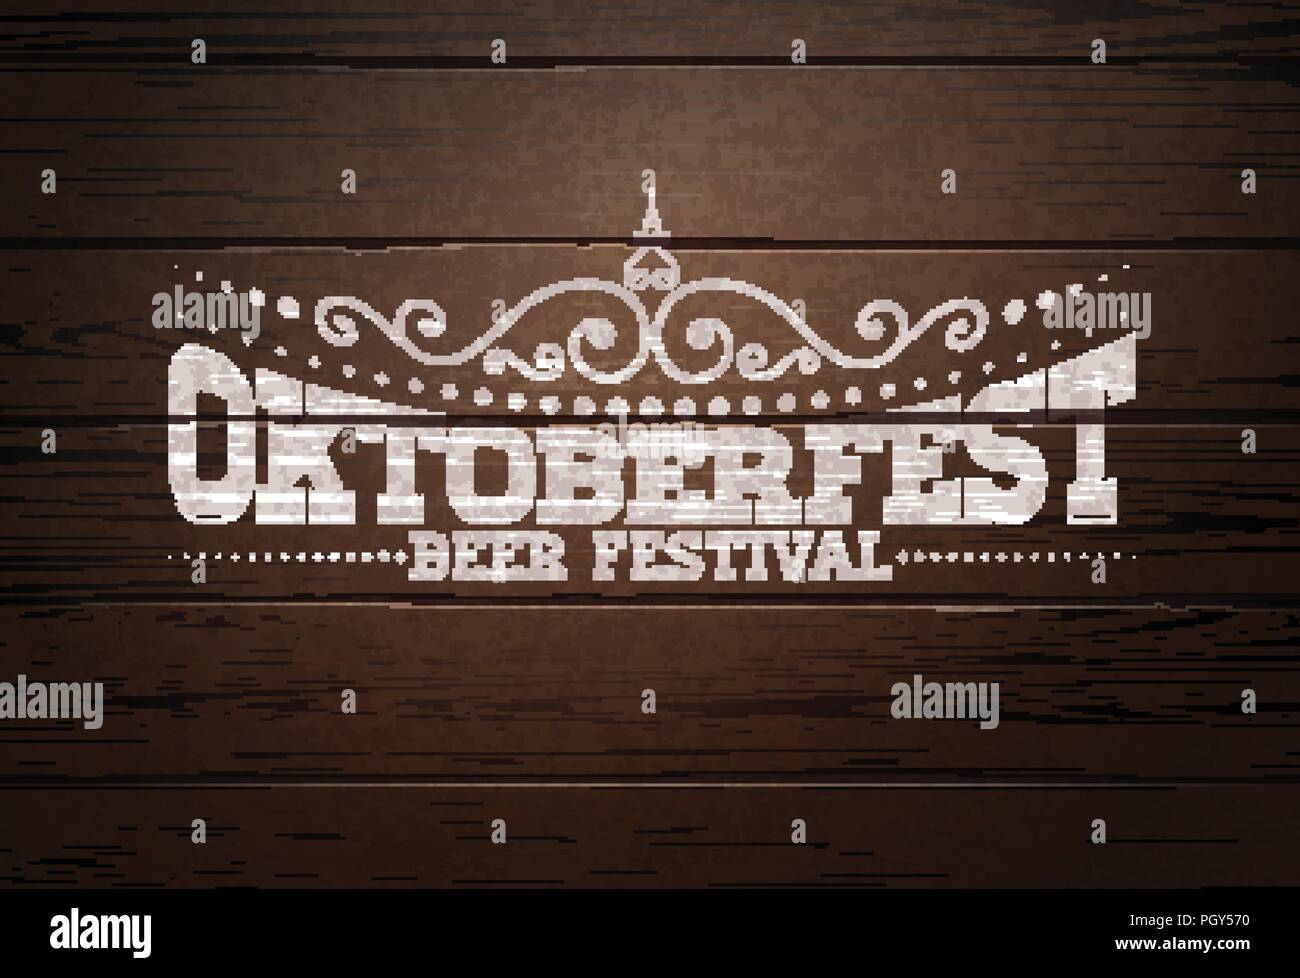 Oktoberfest Illustration with typography lettering on vintage wood background. Oktoberfest vector design for greeting card, banner, flyer, invitation or promotional poster. Celebration template for traditional German beer festival. - Stock Image